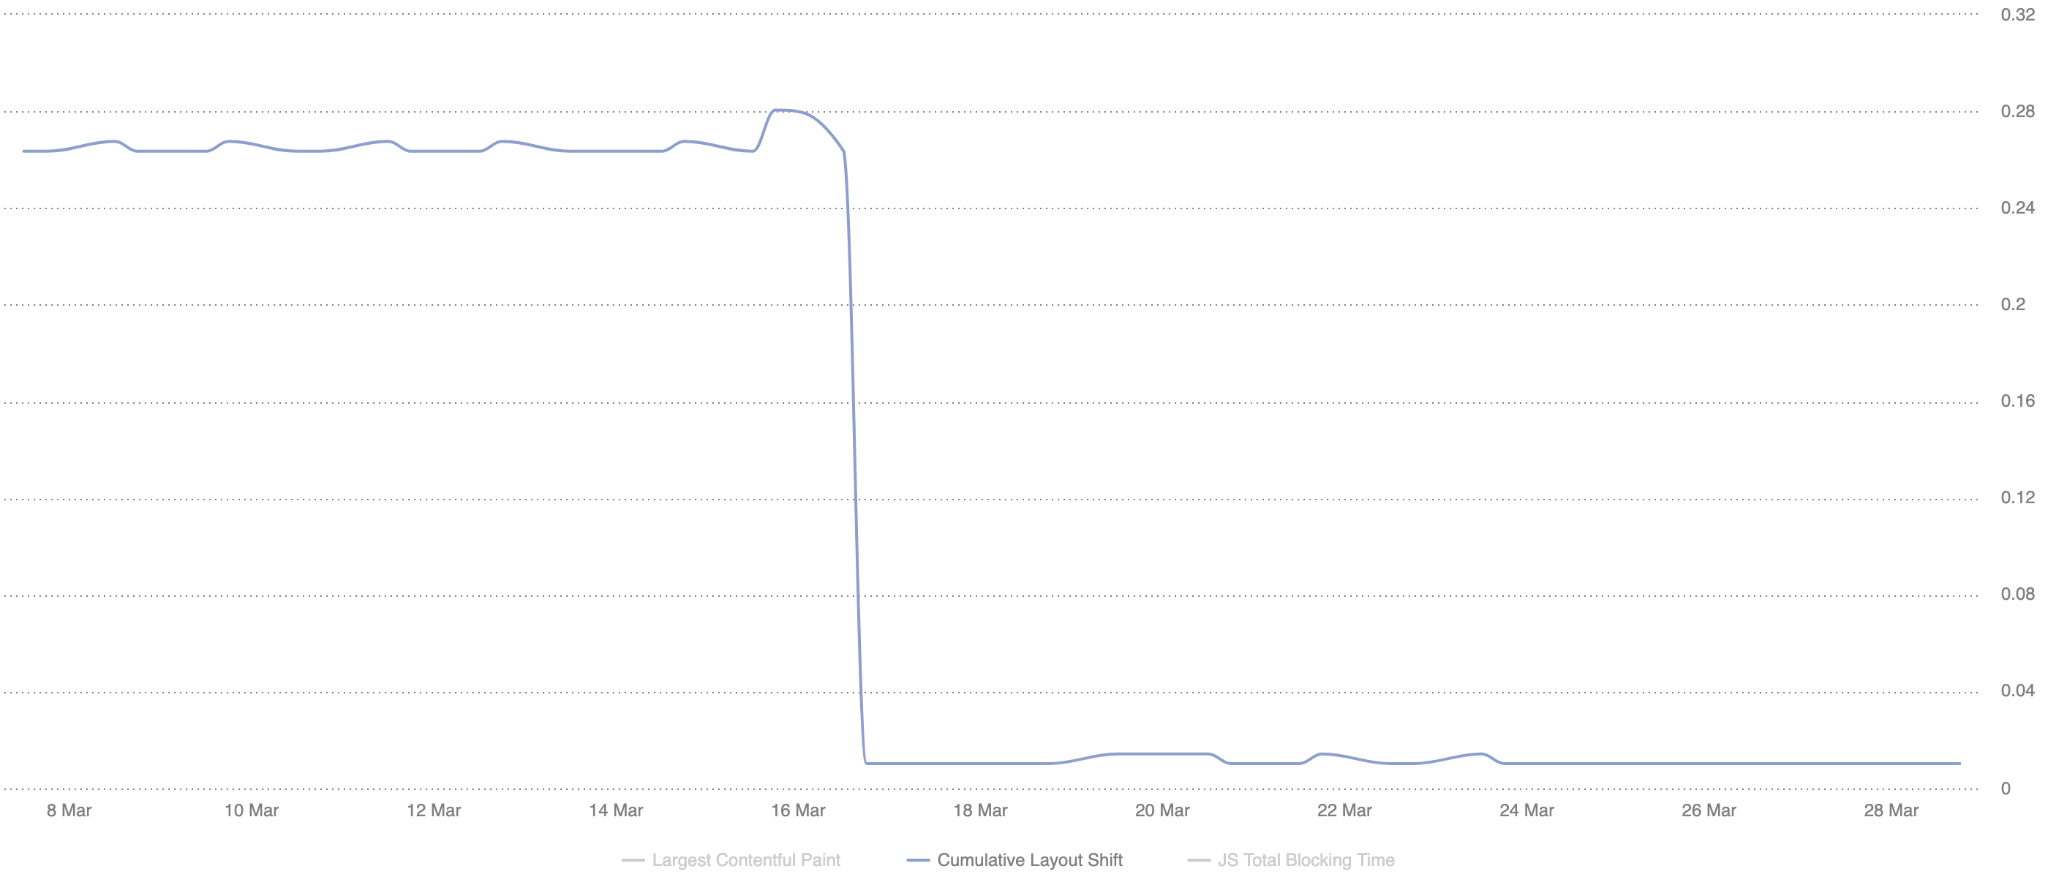 SpeedCurve chart showing a steep drop in CLS score.